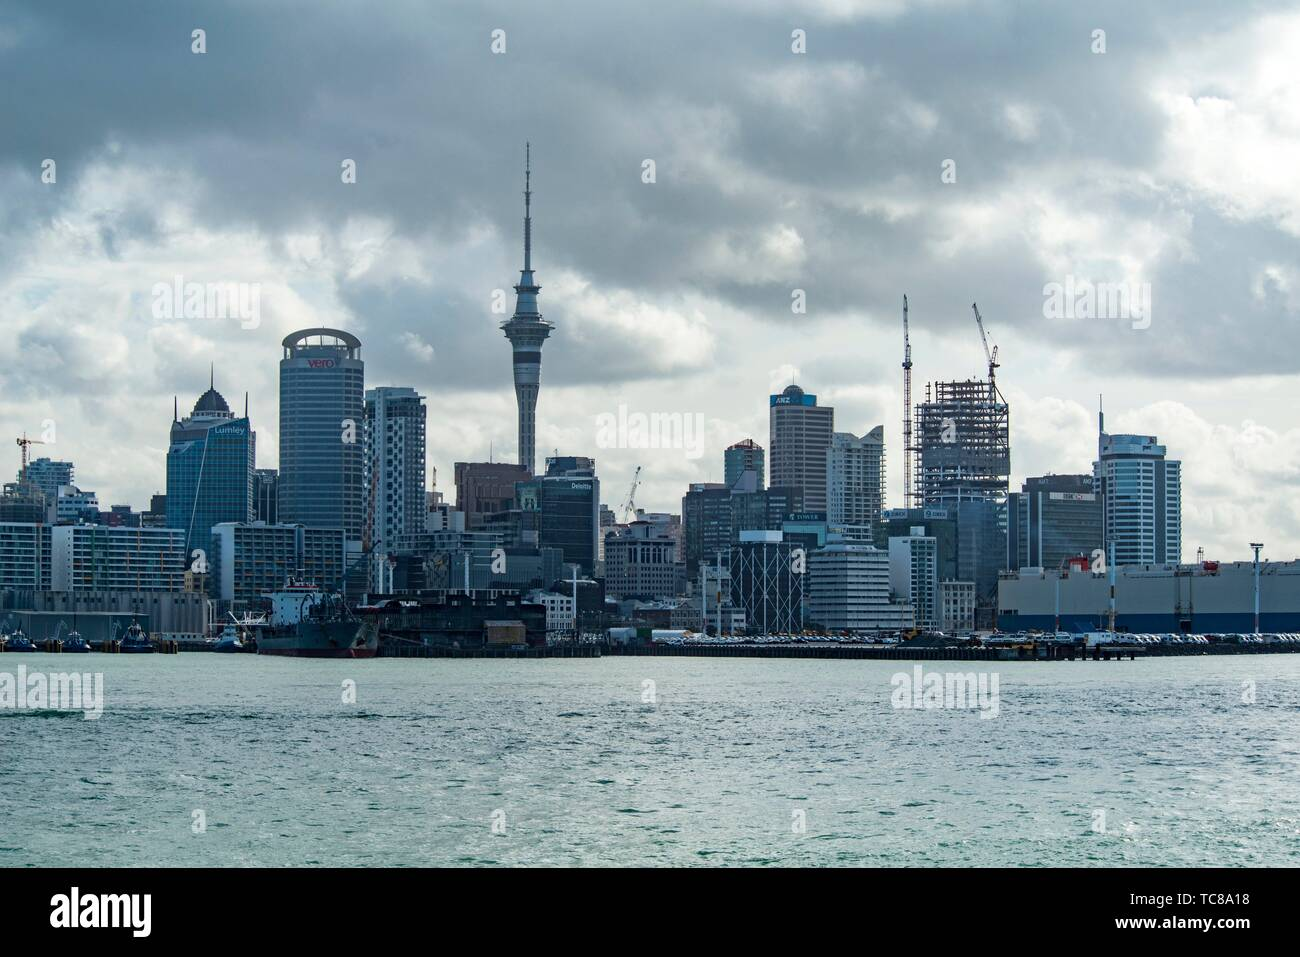 Auckland skyline, Hauraki Gulf, New Zealand. - Stock Image